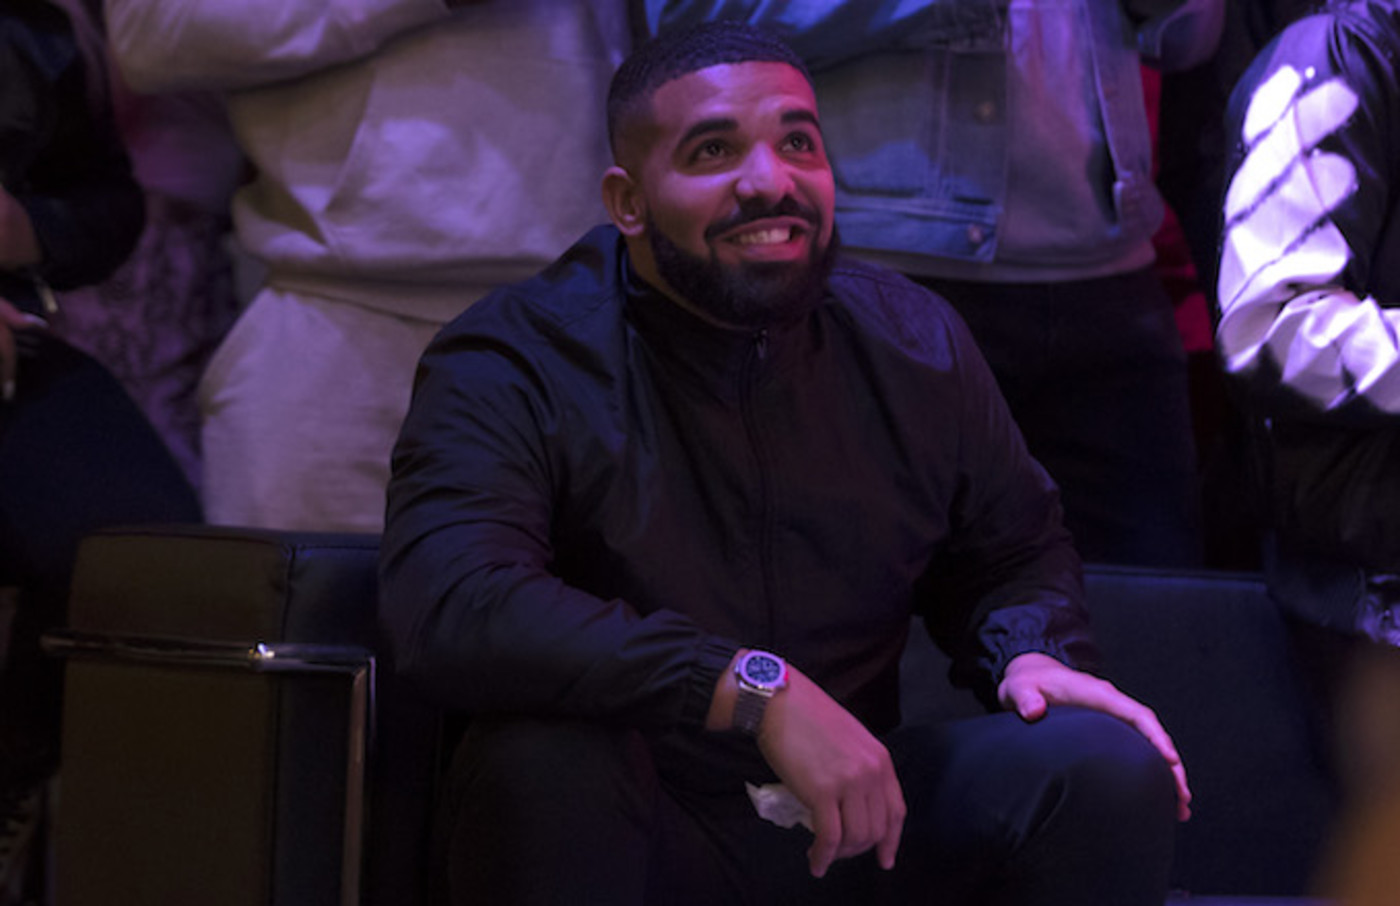 Drake watches a screen alongside other Toronto Raptors fans.